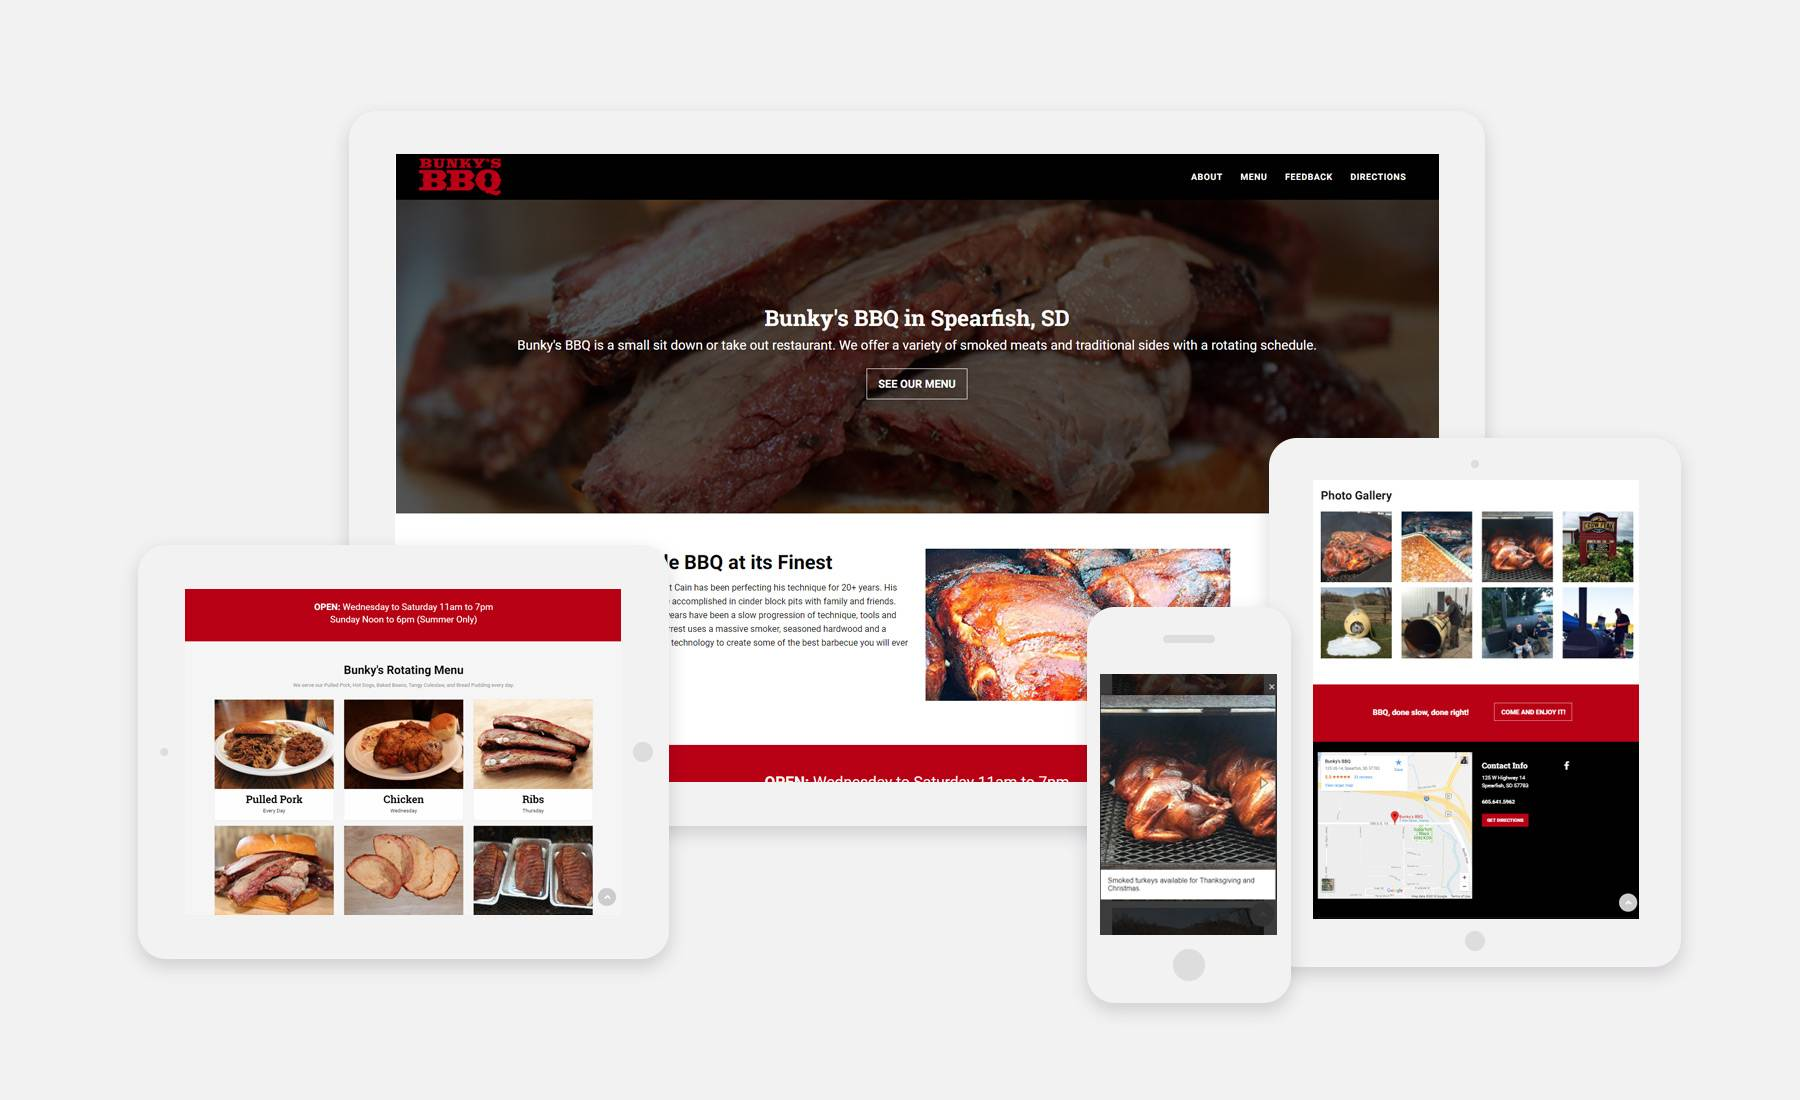 Bunky's BBQ website on 4 devices: desktop, ipad vertical, ipad landscape, and mobile